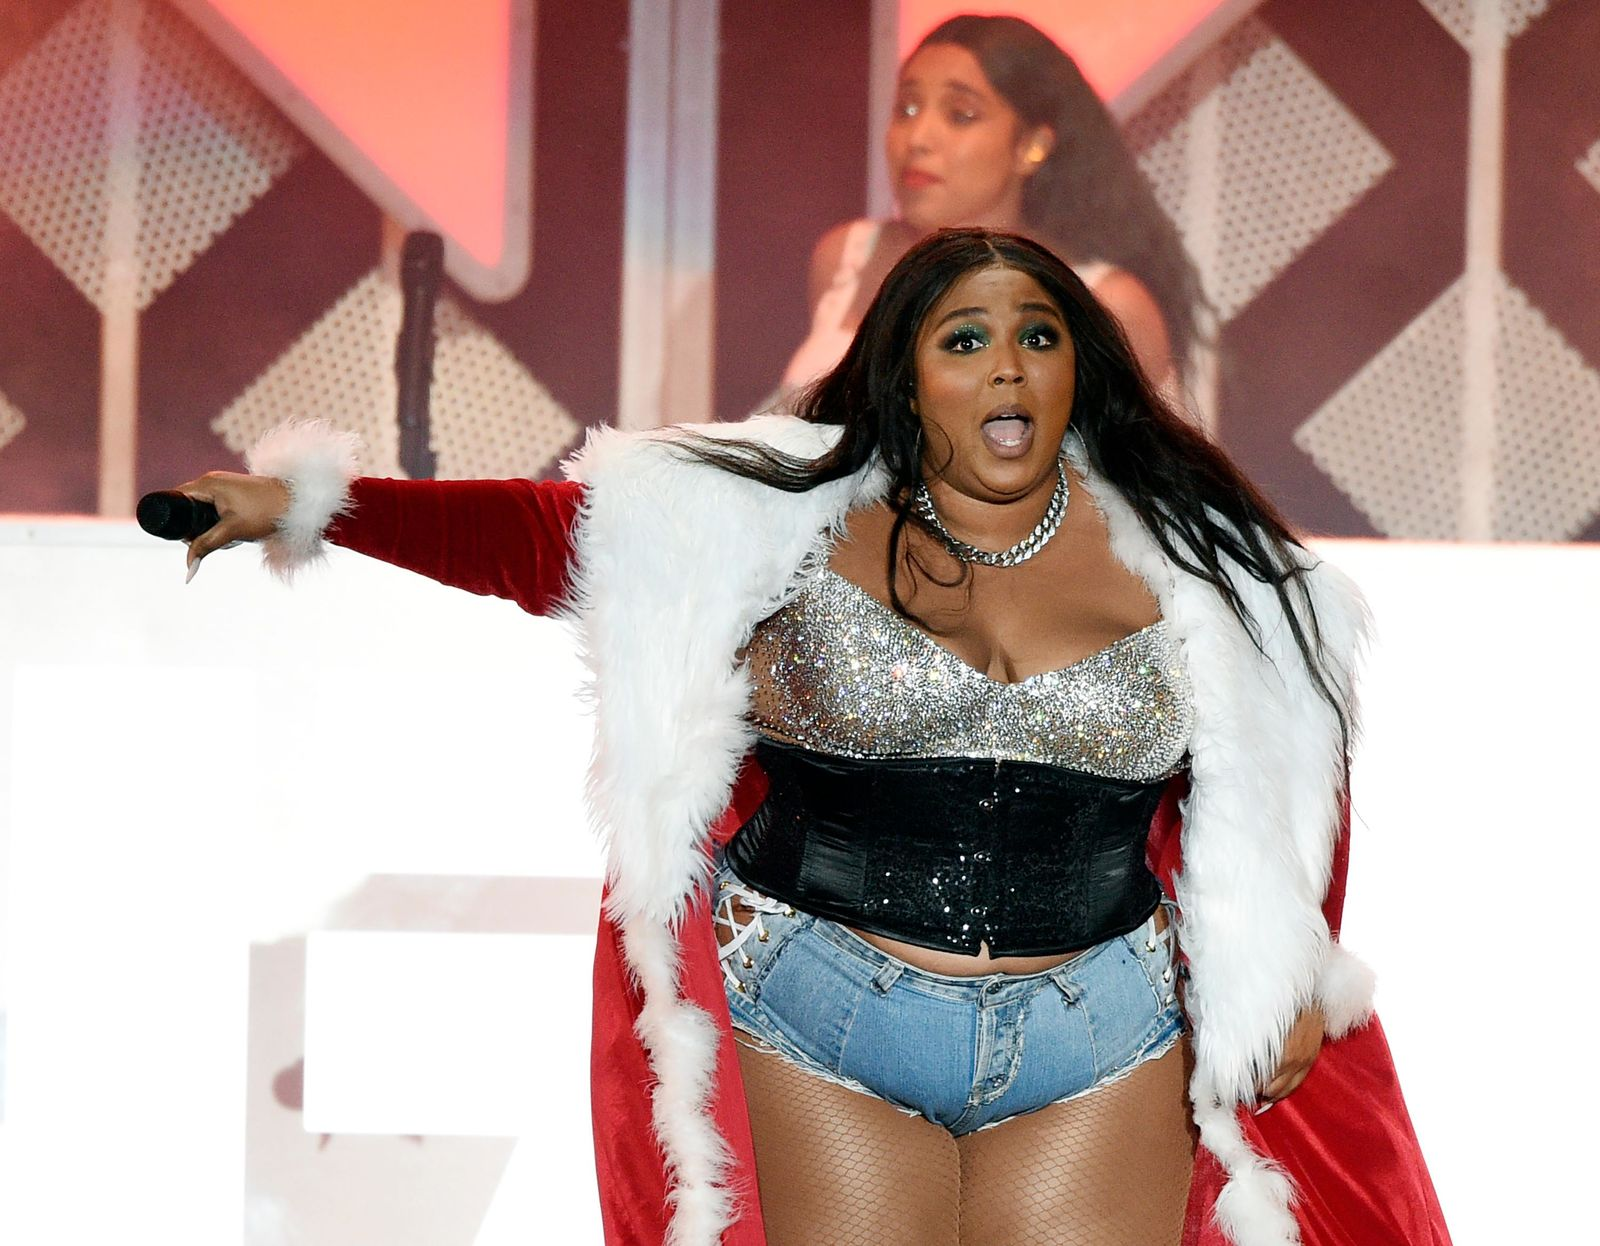 Lizzo performs during the 2019 KIIS-FM Jingle Ball concert at The Forum, Friday, Dec. 6, 2019, in Inglewood, Calif. (AP Photo/Chris Pizzello)